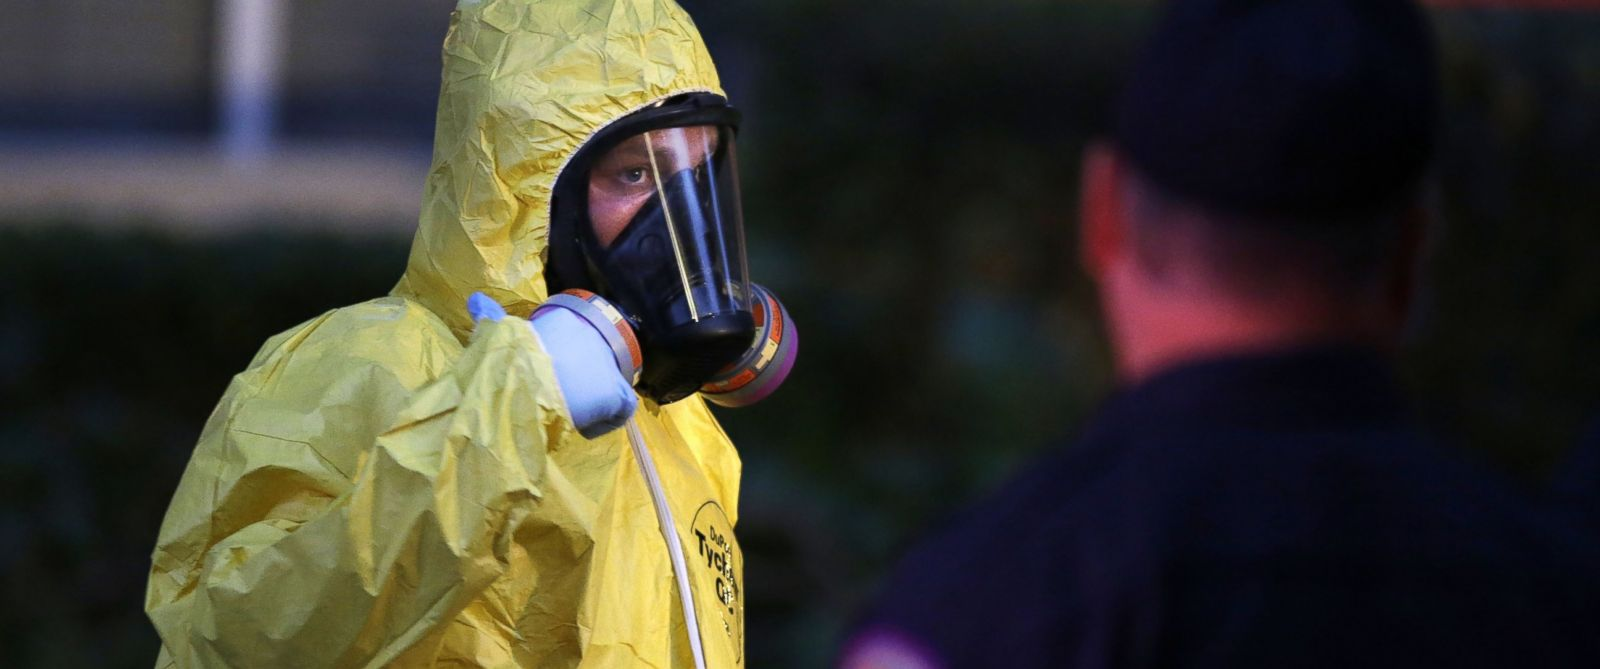 PHOTO: A hazmat worker finishes cleaning outside the apartment building of a hospital worker, Oct. 12, 2014, in Dallas.